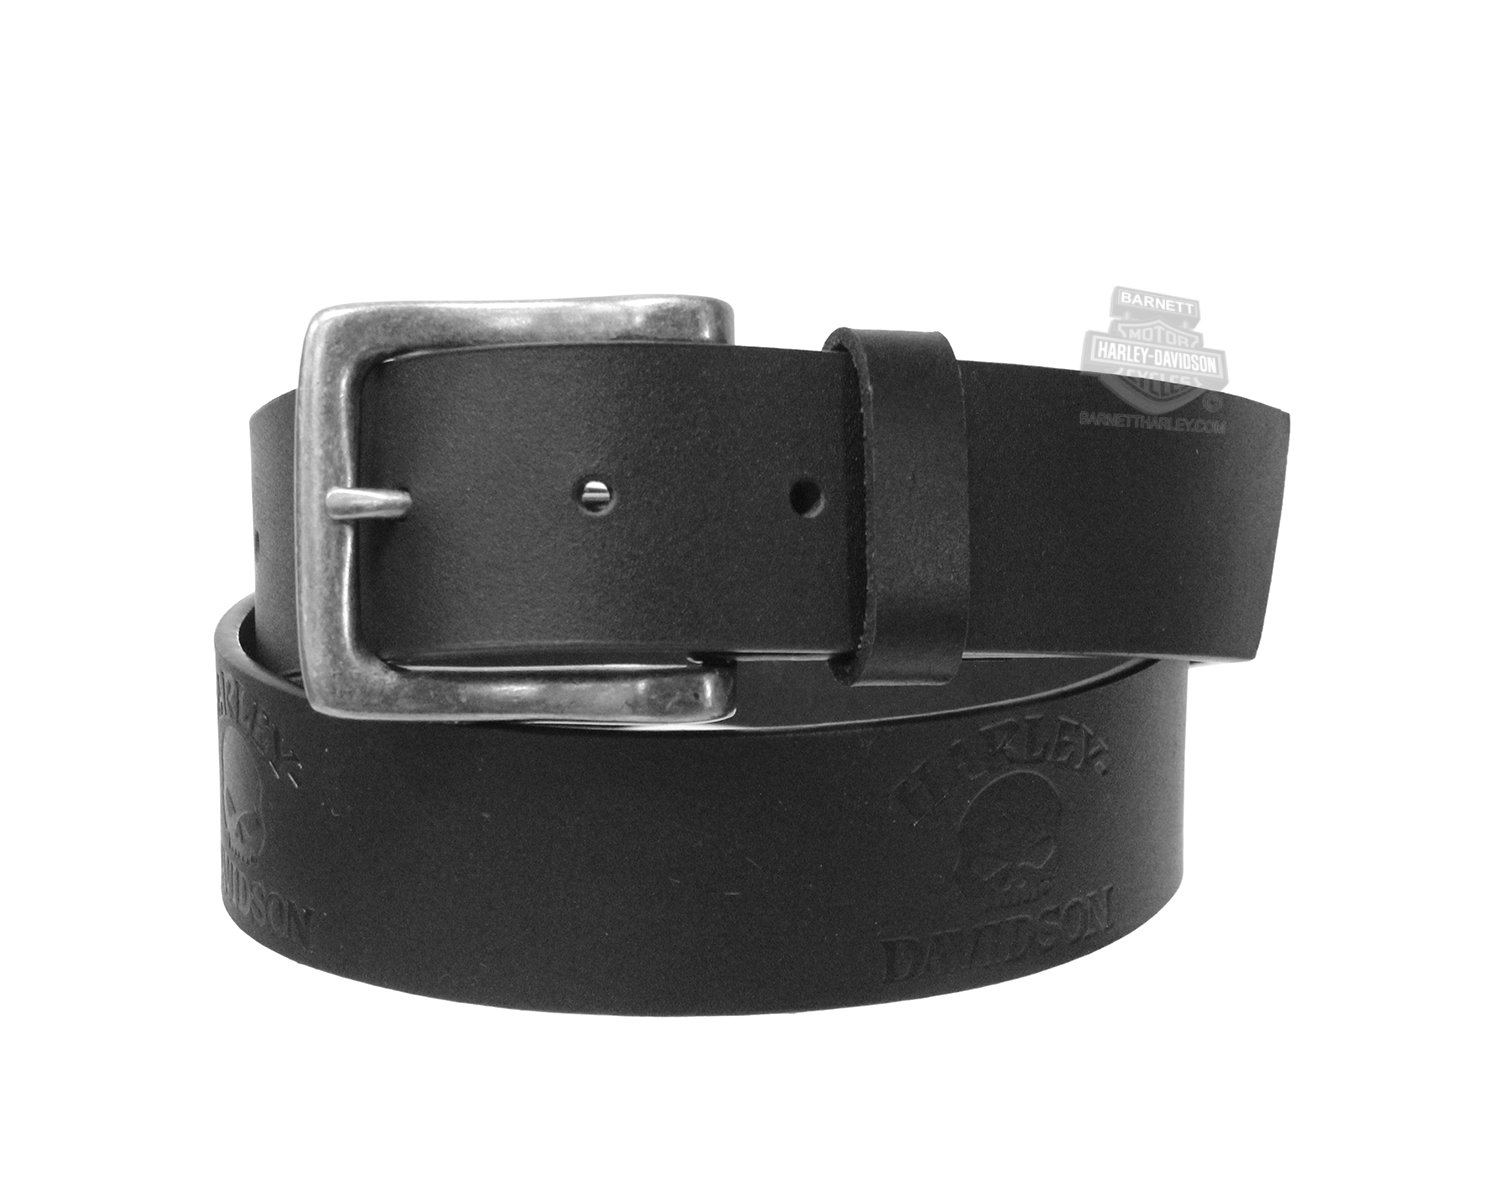 Harley-Davidson Men's Phantom Willie G Skull Belt, Black Leather HDMBT11040 (36)